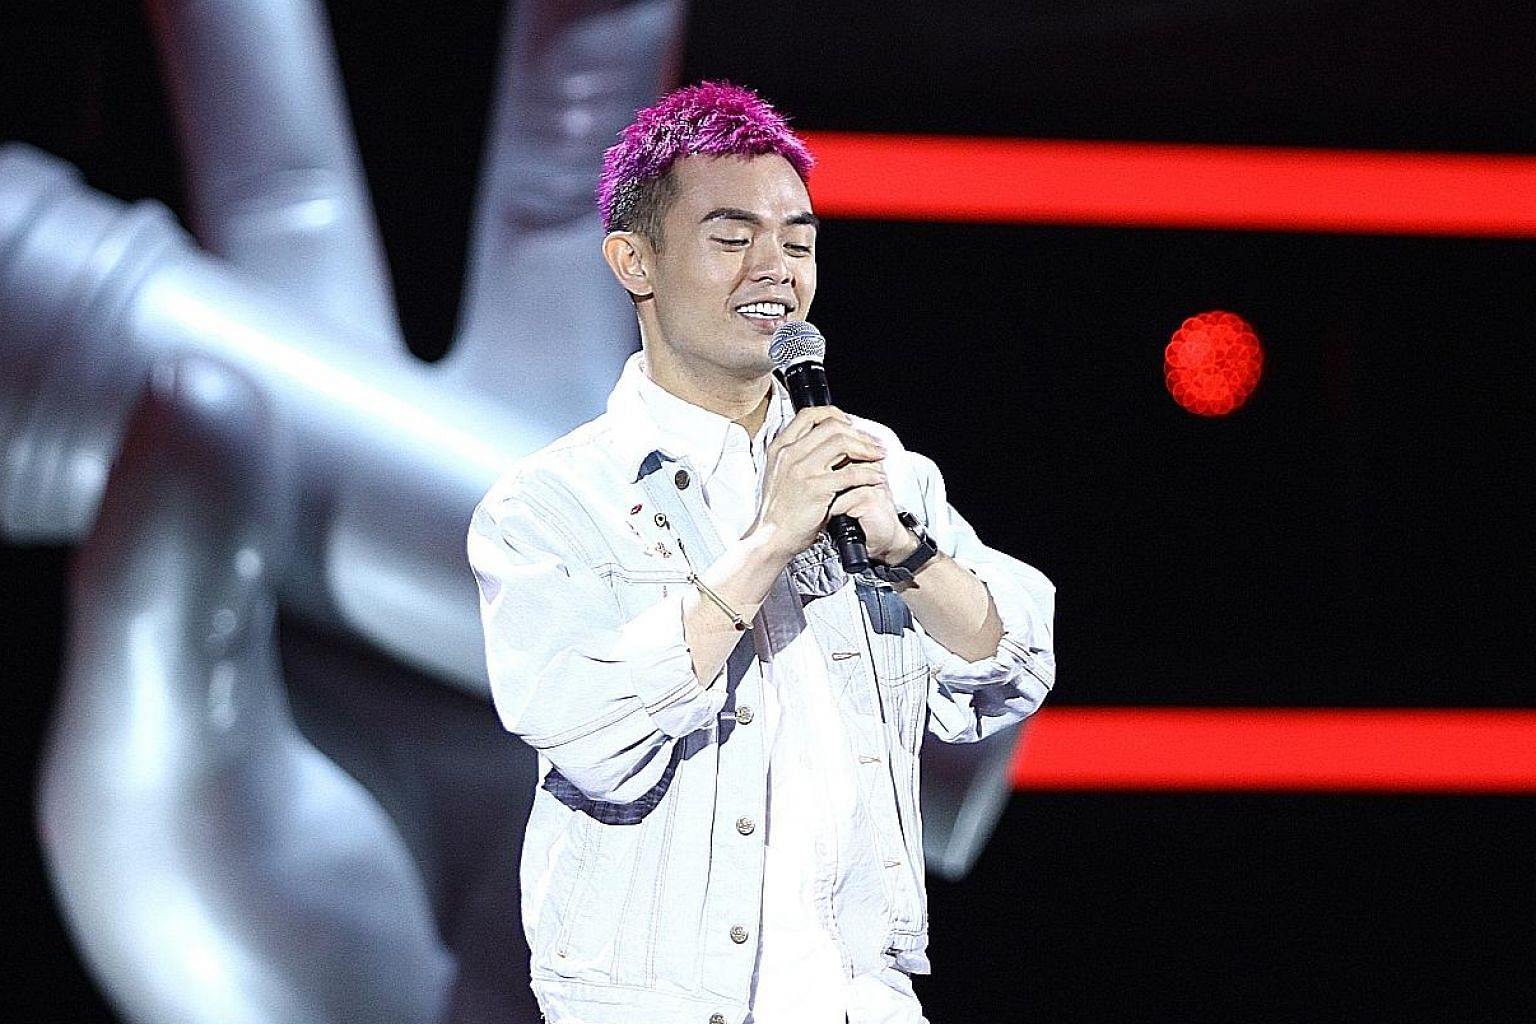 MICappella's Juni Goh performed Step By Step Love, originally sung by Hong Kong singer Sammi Cheng. Contestant Isaac Ong performed Malaysian singer Gary Chaw's melancholic ballad You Are The Only One In The World.